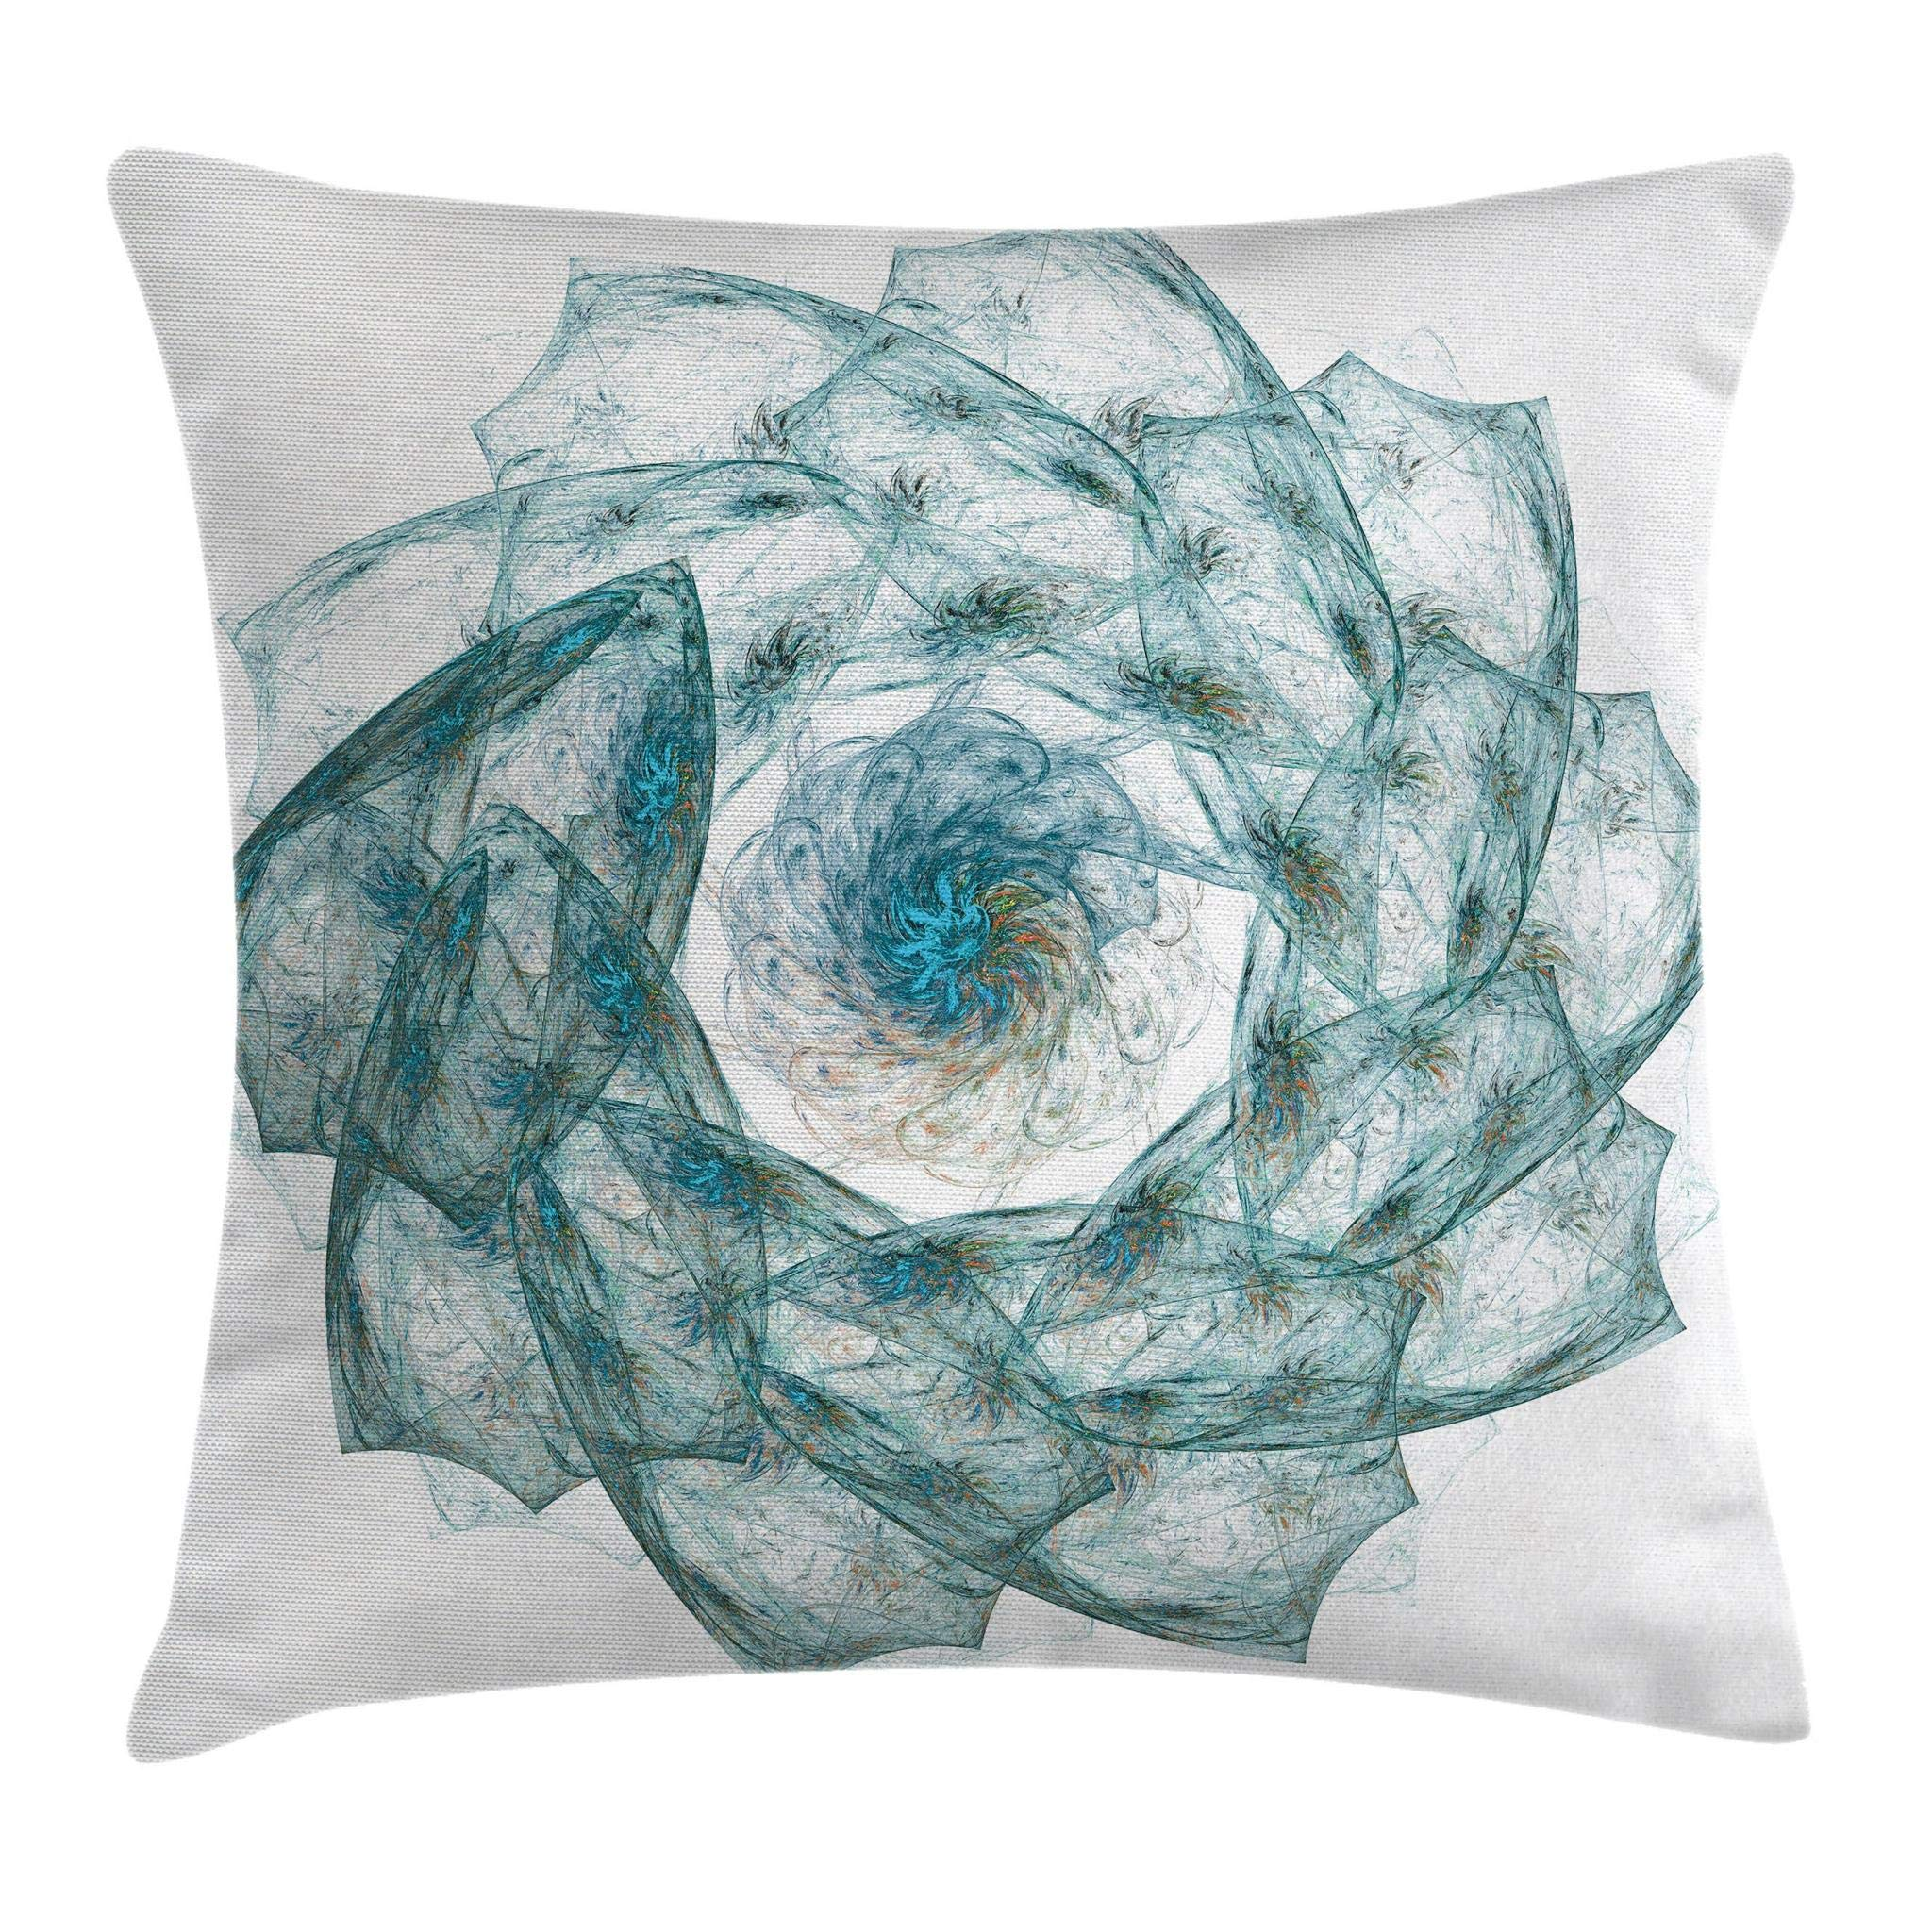 Ambesonne Spires Throw Pillow Cushion Cover, Flower Shaped Spiral Digital Vortex Pattern with Hazy Colored Elements Image, Decorative Square Accent Pillow Case, 20'' X 20'', Teal